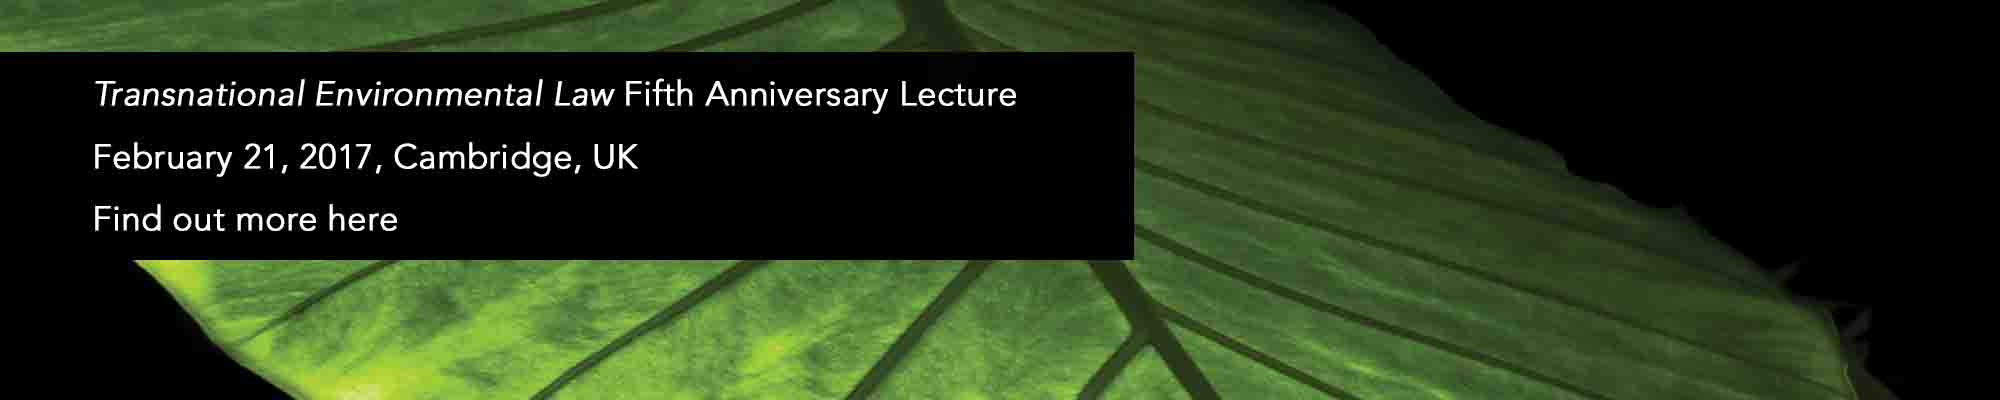 TEL Fifth Anniversary LEcture banner